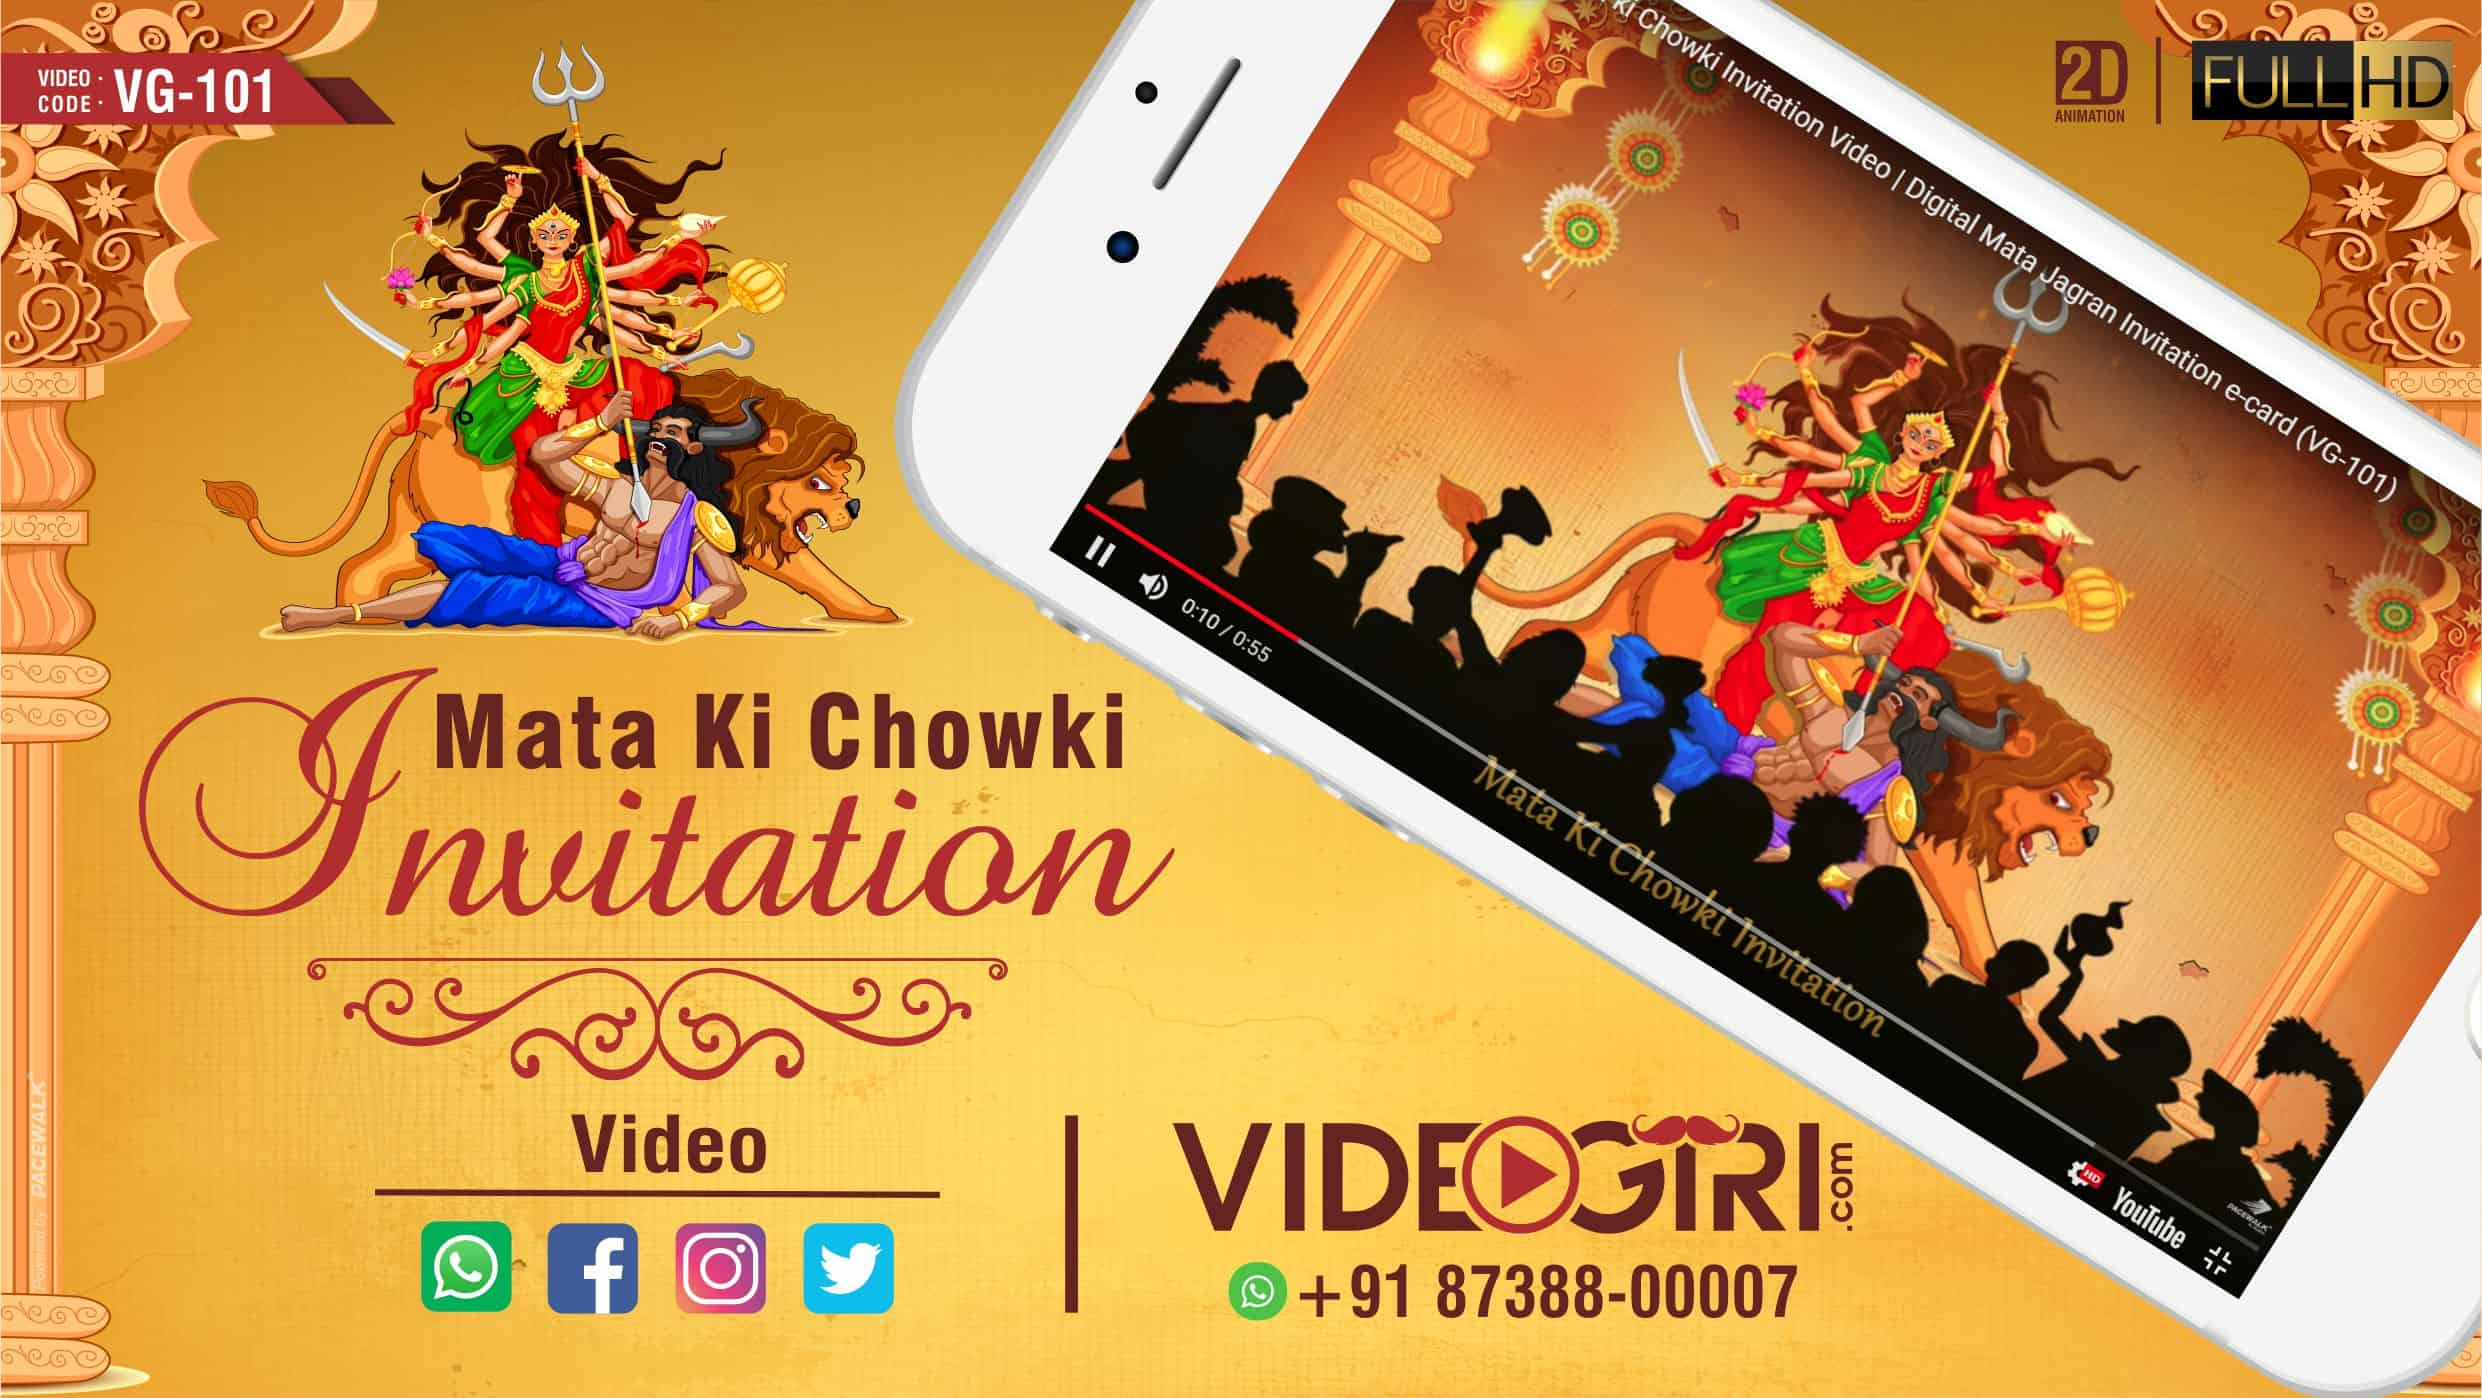 Creative mata ki chowki invitation video for whatsapp and mobile creative mata ki chowki invitation video for whatsapp mata ka jagran invitation video stopboris Image collections